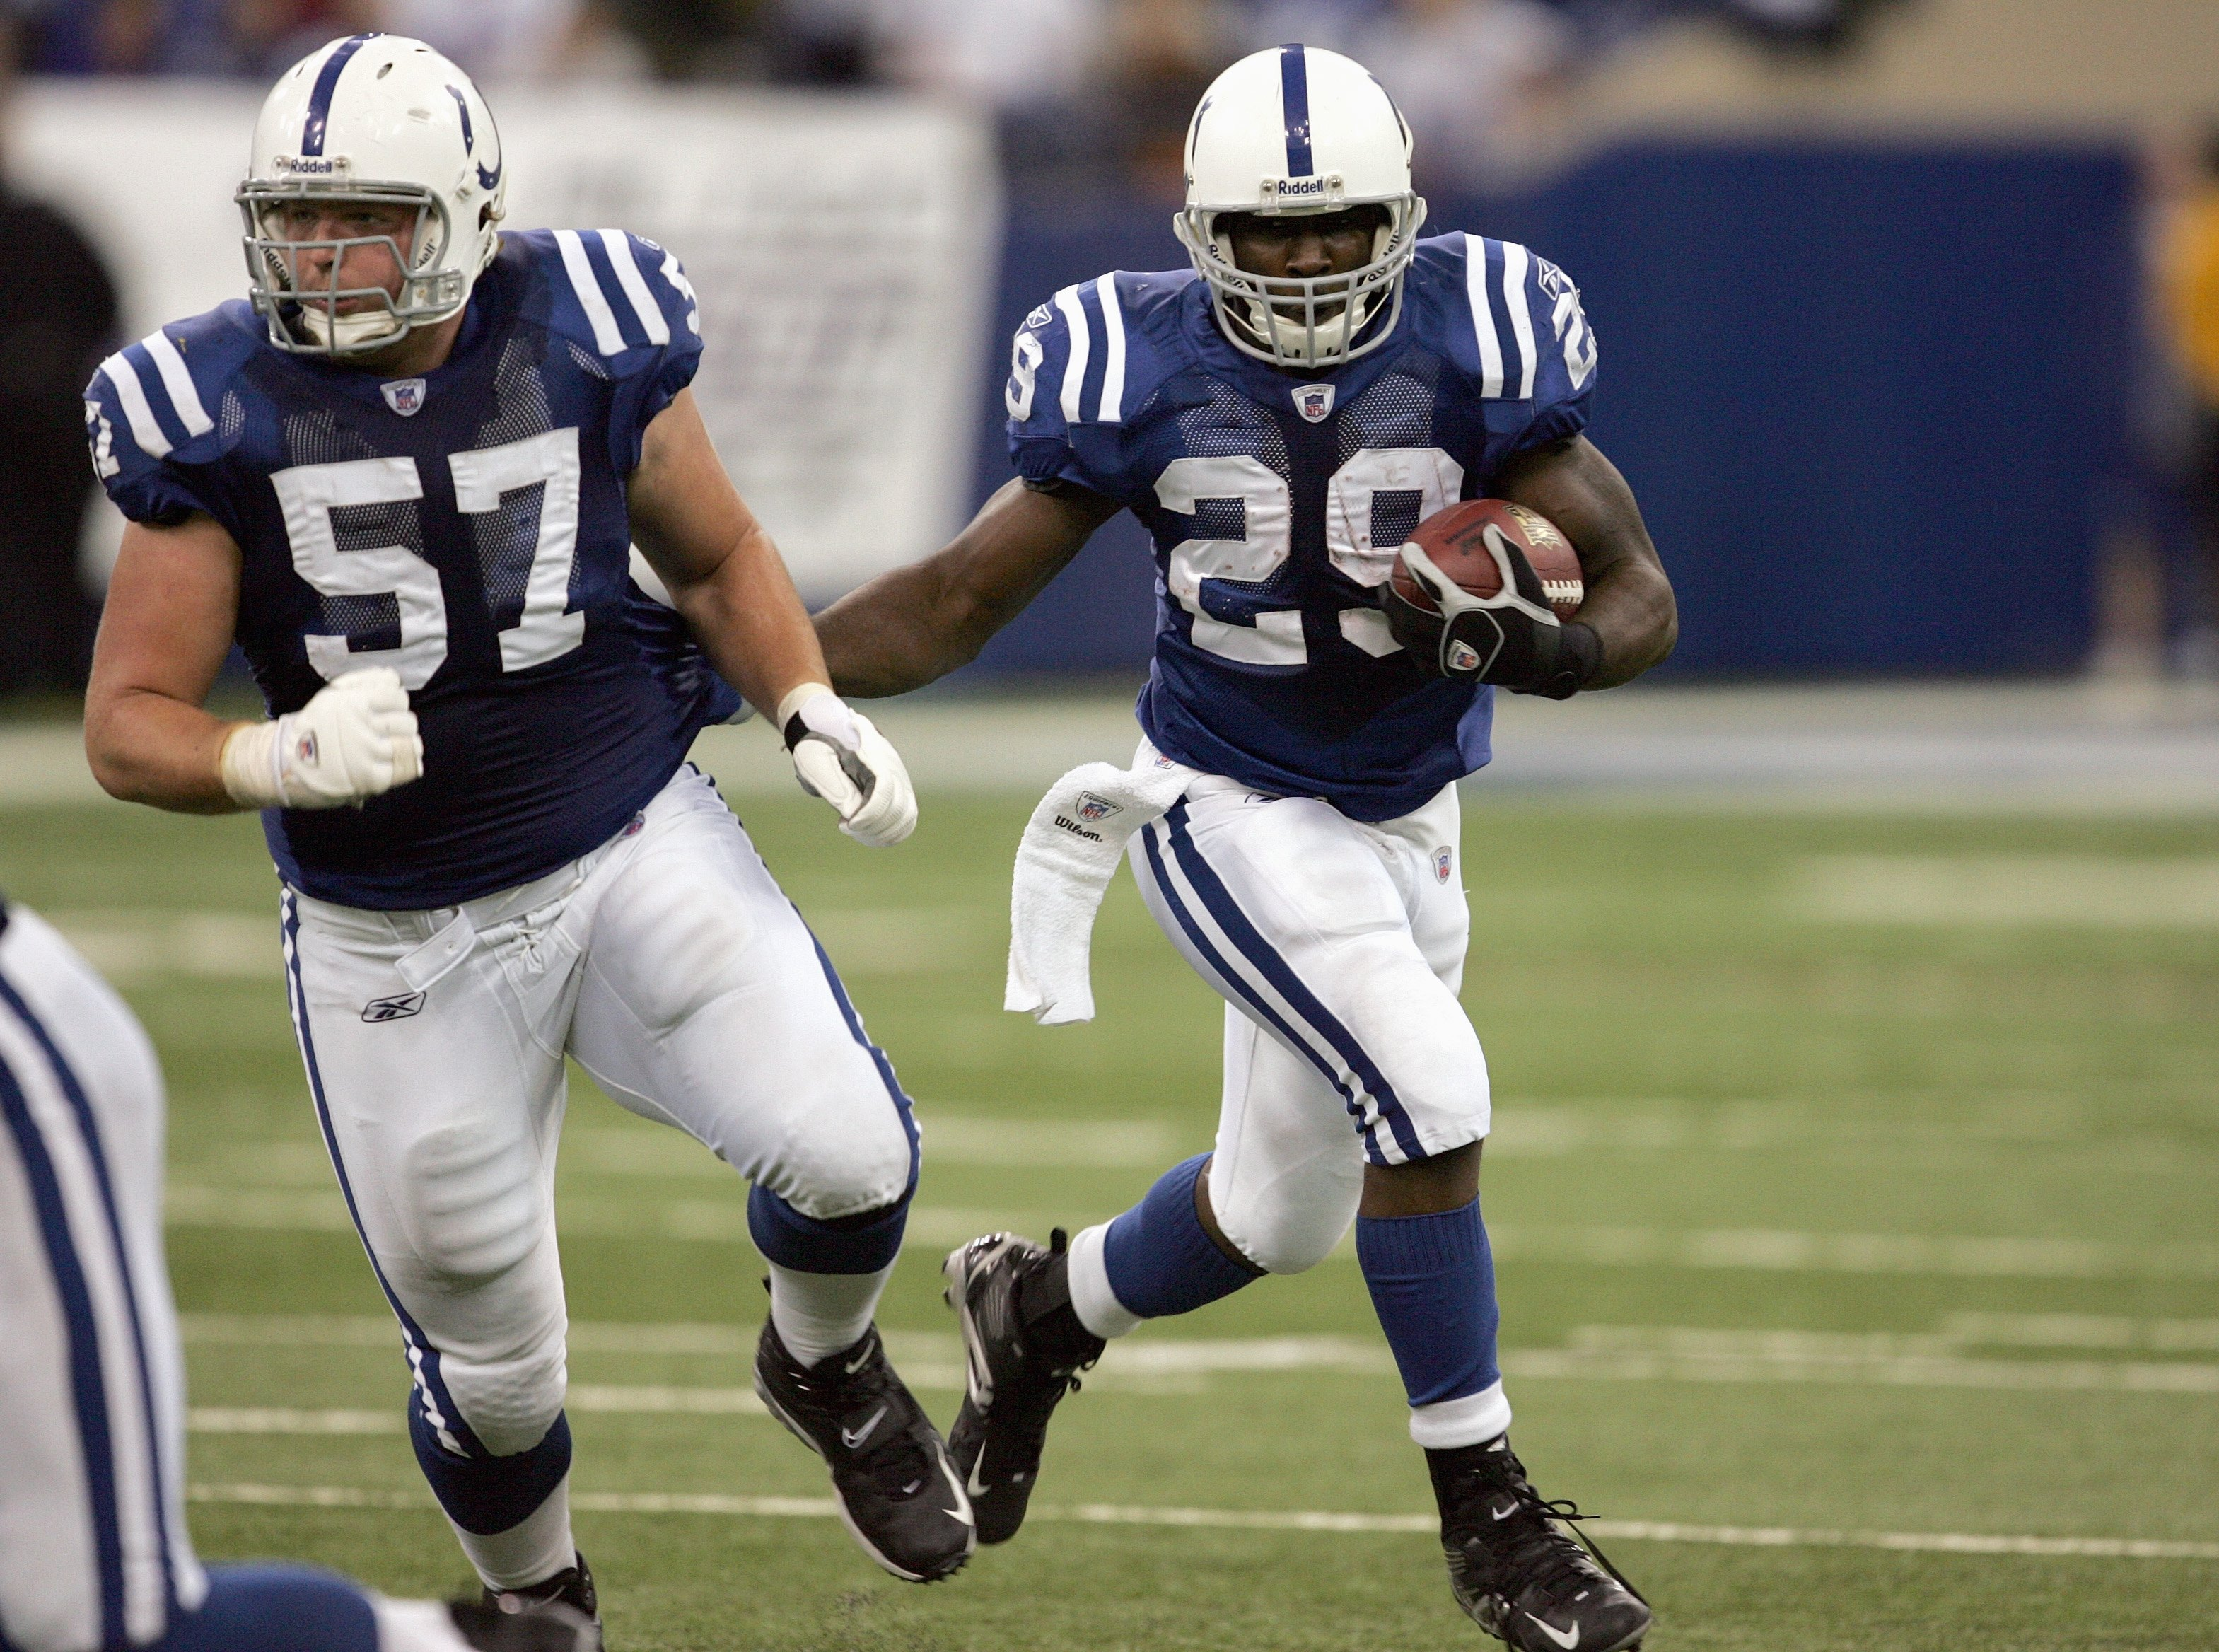 INDIANAPOLIS - NOVEMBER 12:  Joseph Addai #29 of the Indianapolis Colts carries the ball with Dylan Gandy #57 during the game against the Buffalo Bills on November 12, 2006 at the RCA Dome in Indianapolis, Indiana. The Colts defeated the Bills 17-16. (Pho